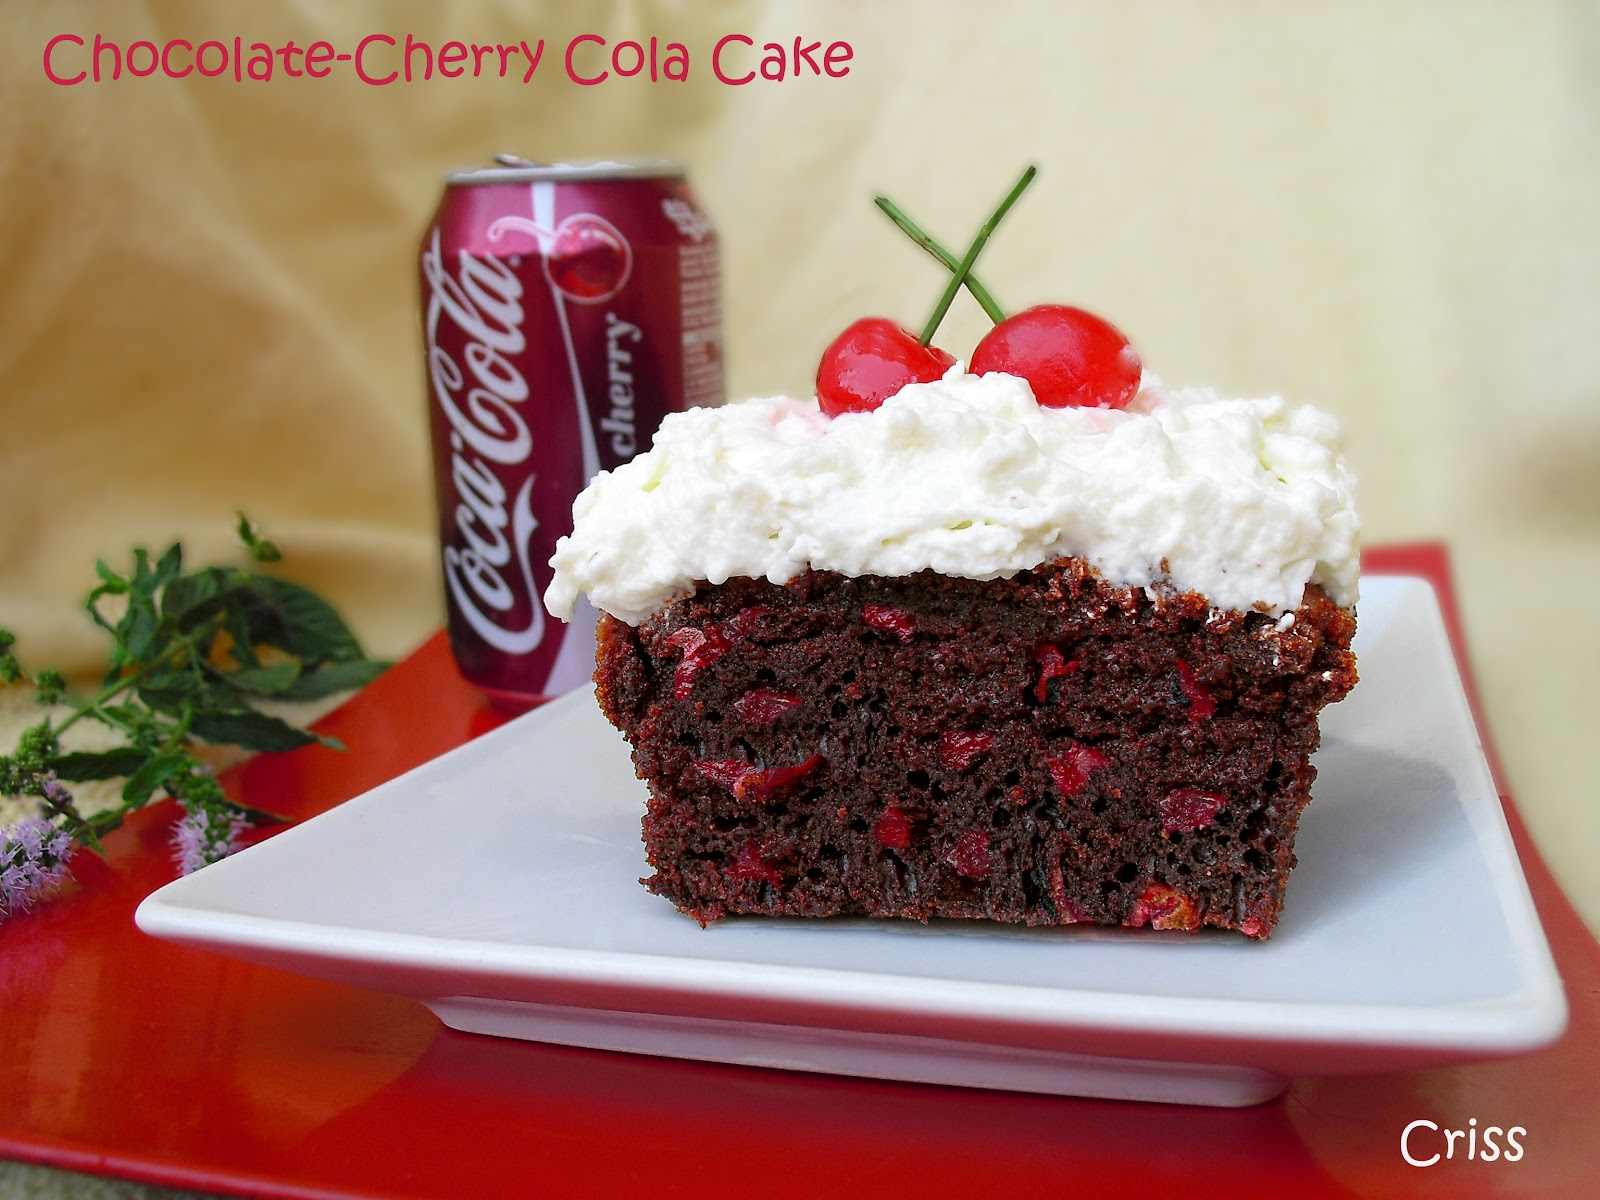 ALIMENTA: CHOCOLATE-CHERRY COLA CAKE